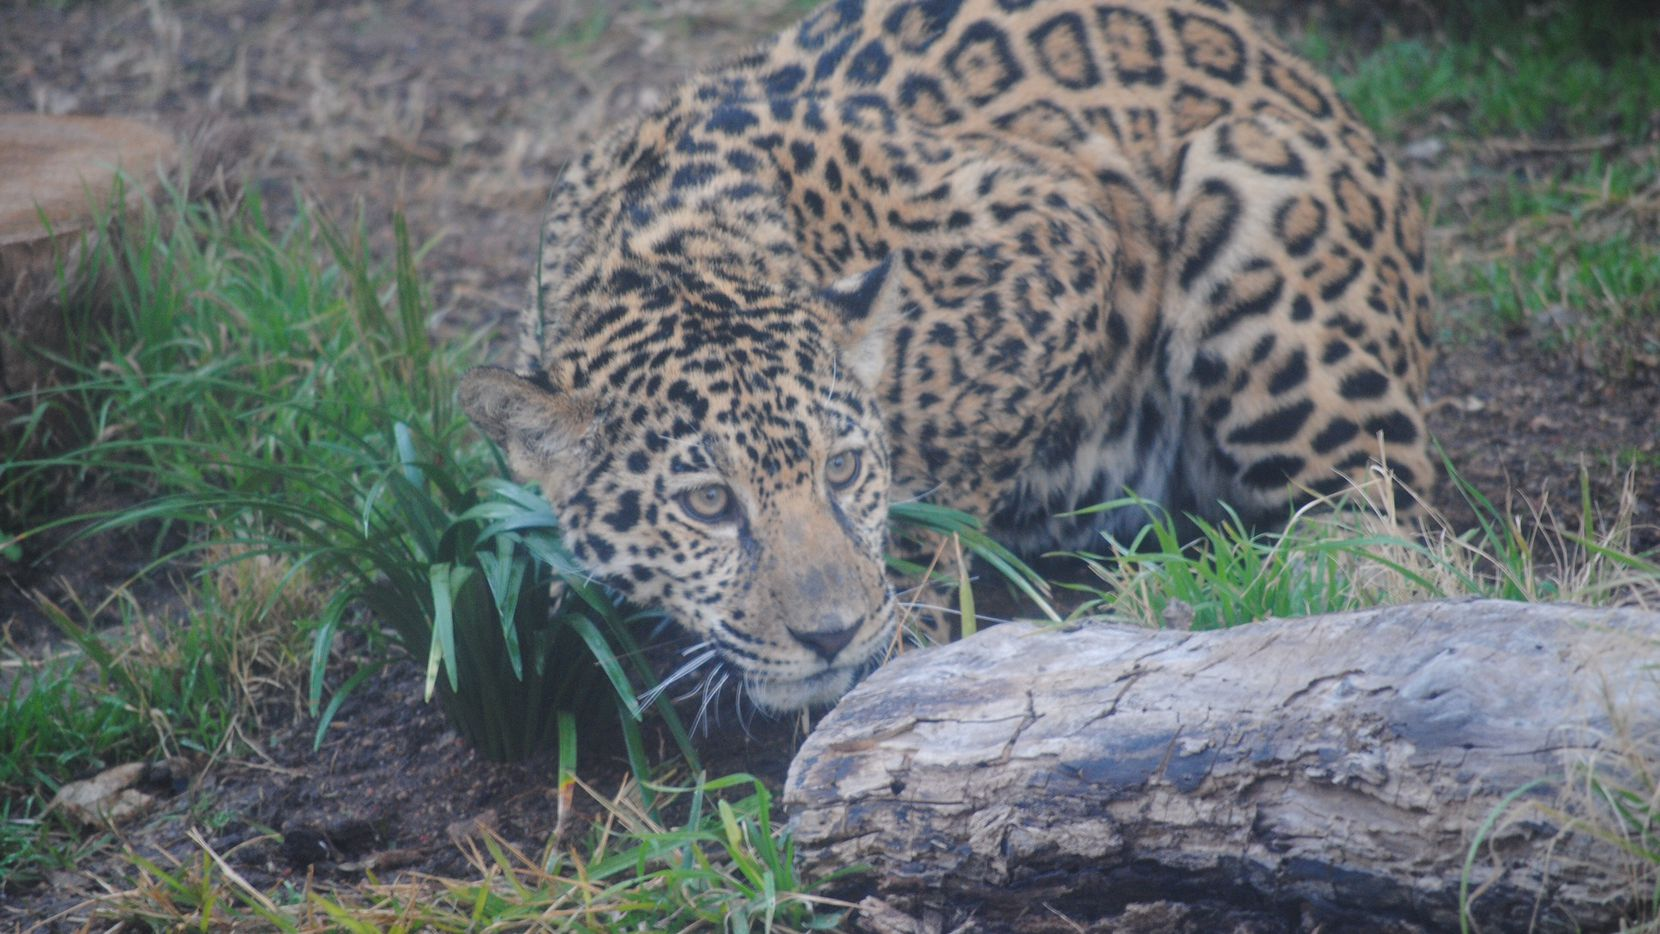 Estrella the jaguar at the Abilene Zoo. The jaguar escaped its enclosure Monday and attacked a spider monkey before it was tranquilized.